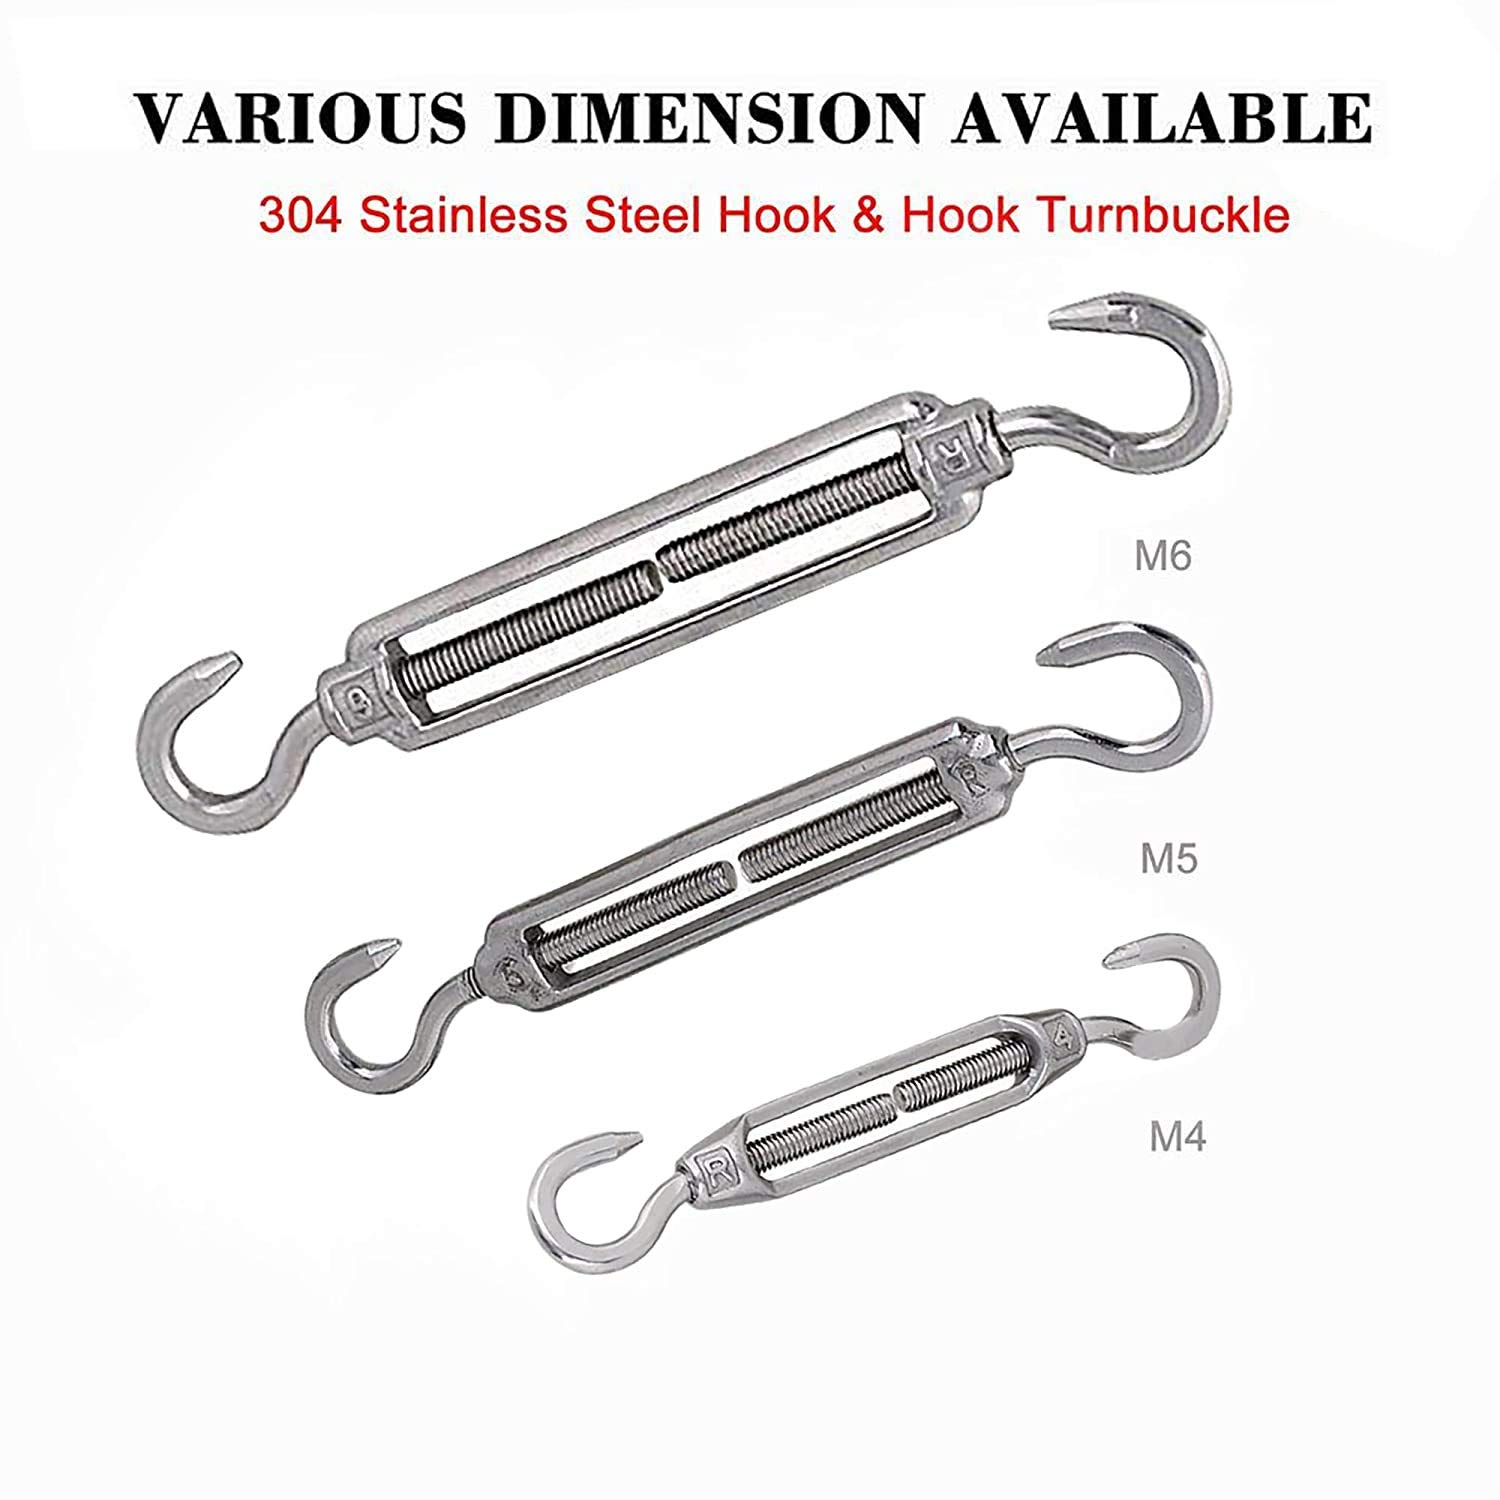 POFET 10pcs M4 Stainless Steel 304 Hook/& Hook Turnbuckle Wire Rope Strong Tension Hardware Kit for Wire Rope Tension Heavy Duty